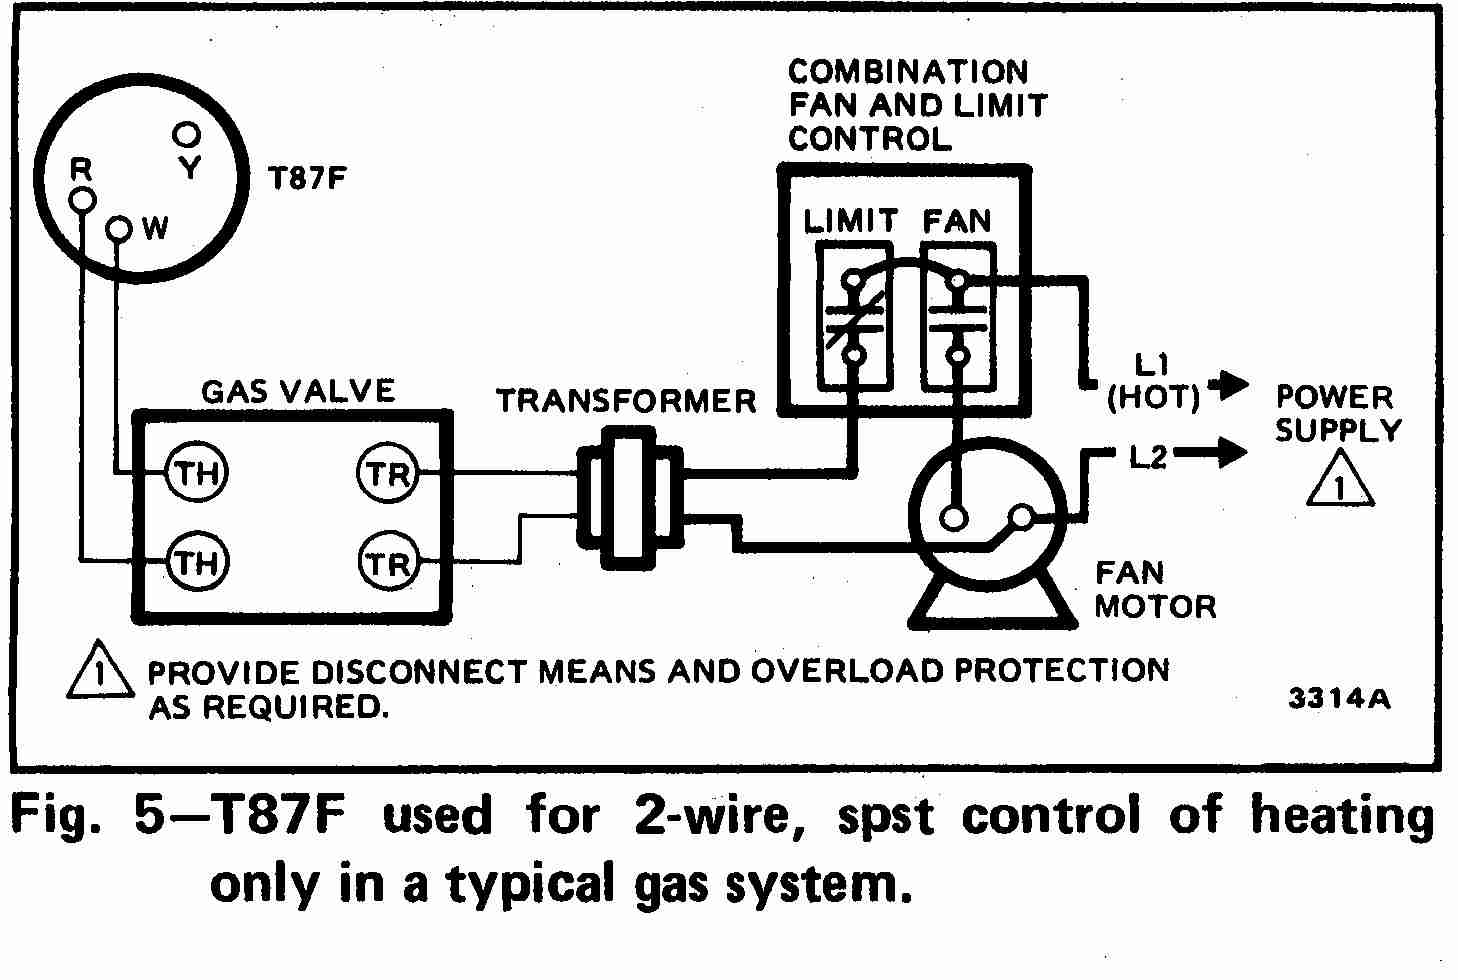 Hvac Heat Pump Wiring Schematic Library 2wire Honeywell T87f Thermostat Diagram For 2 Wire Spst Control Of Heating Only In